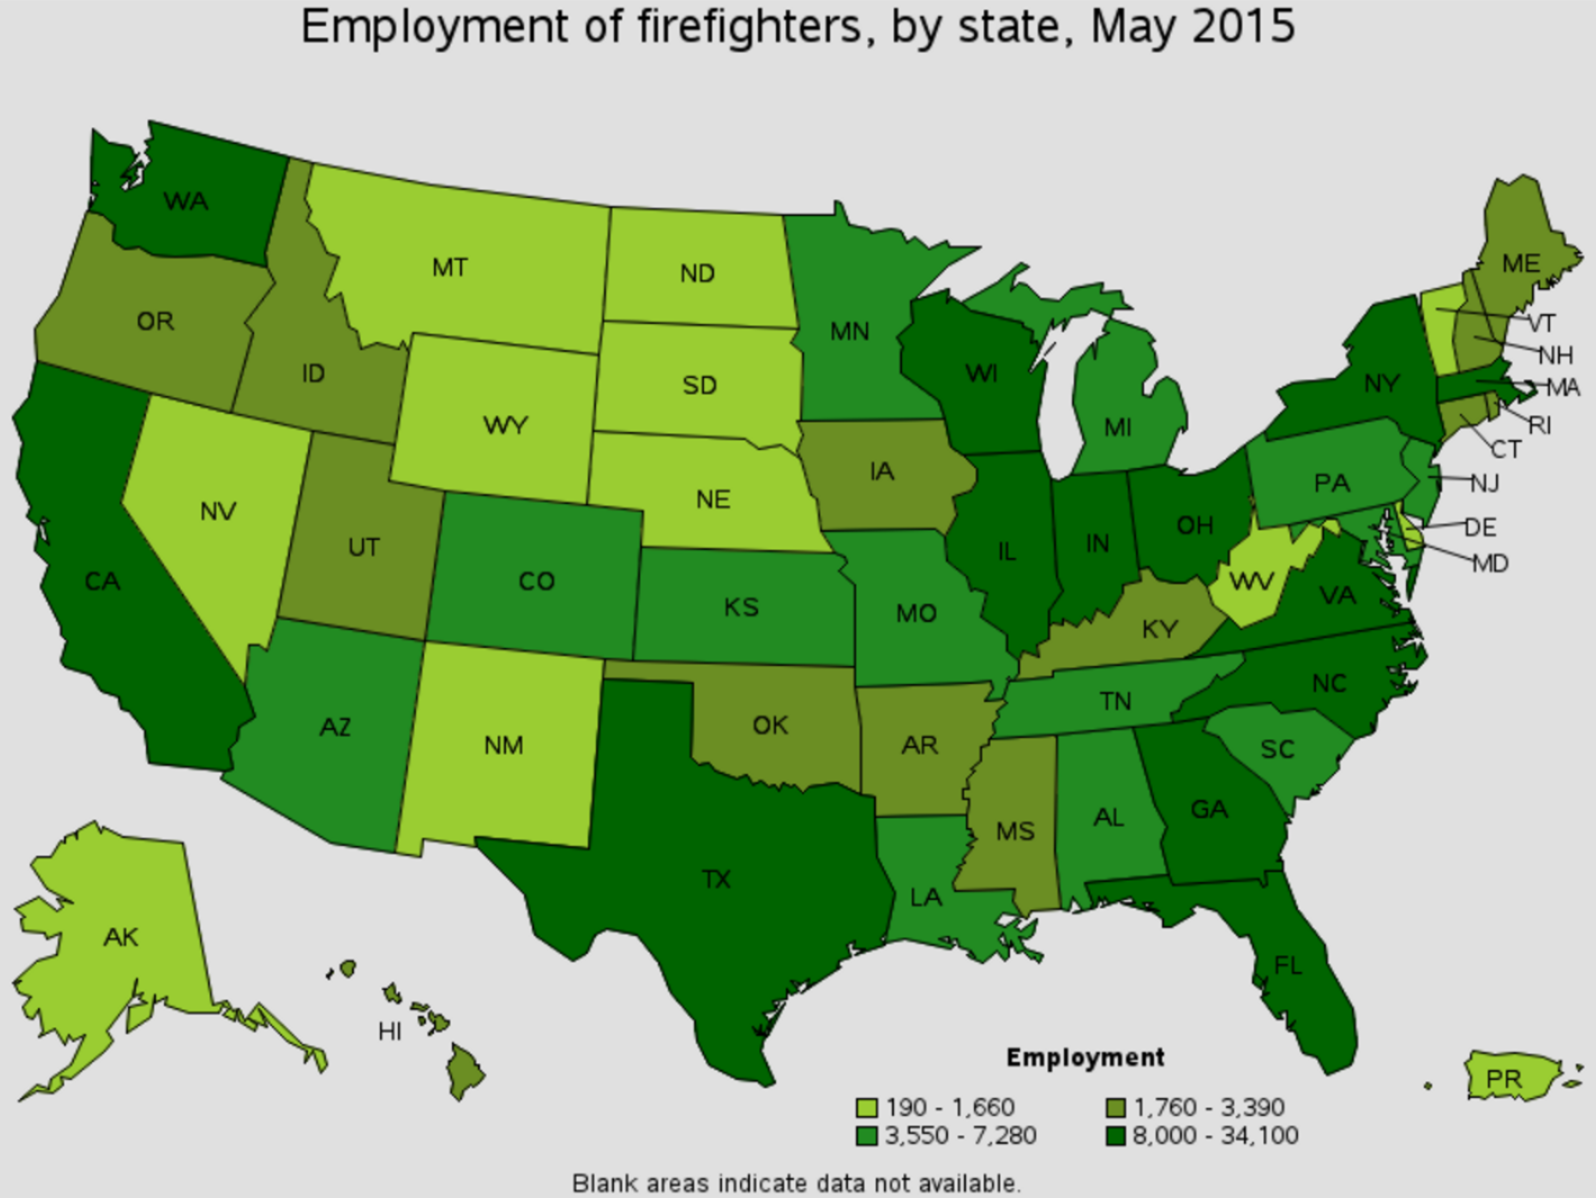 firefighter job outlook by state Gresham Oregon